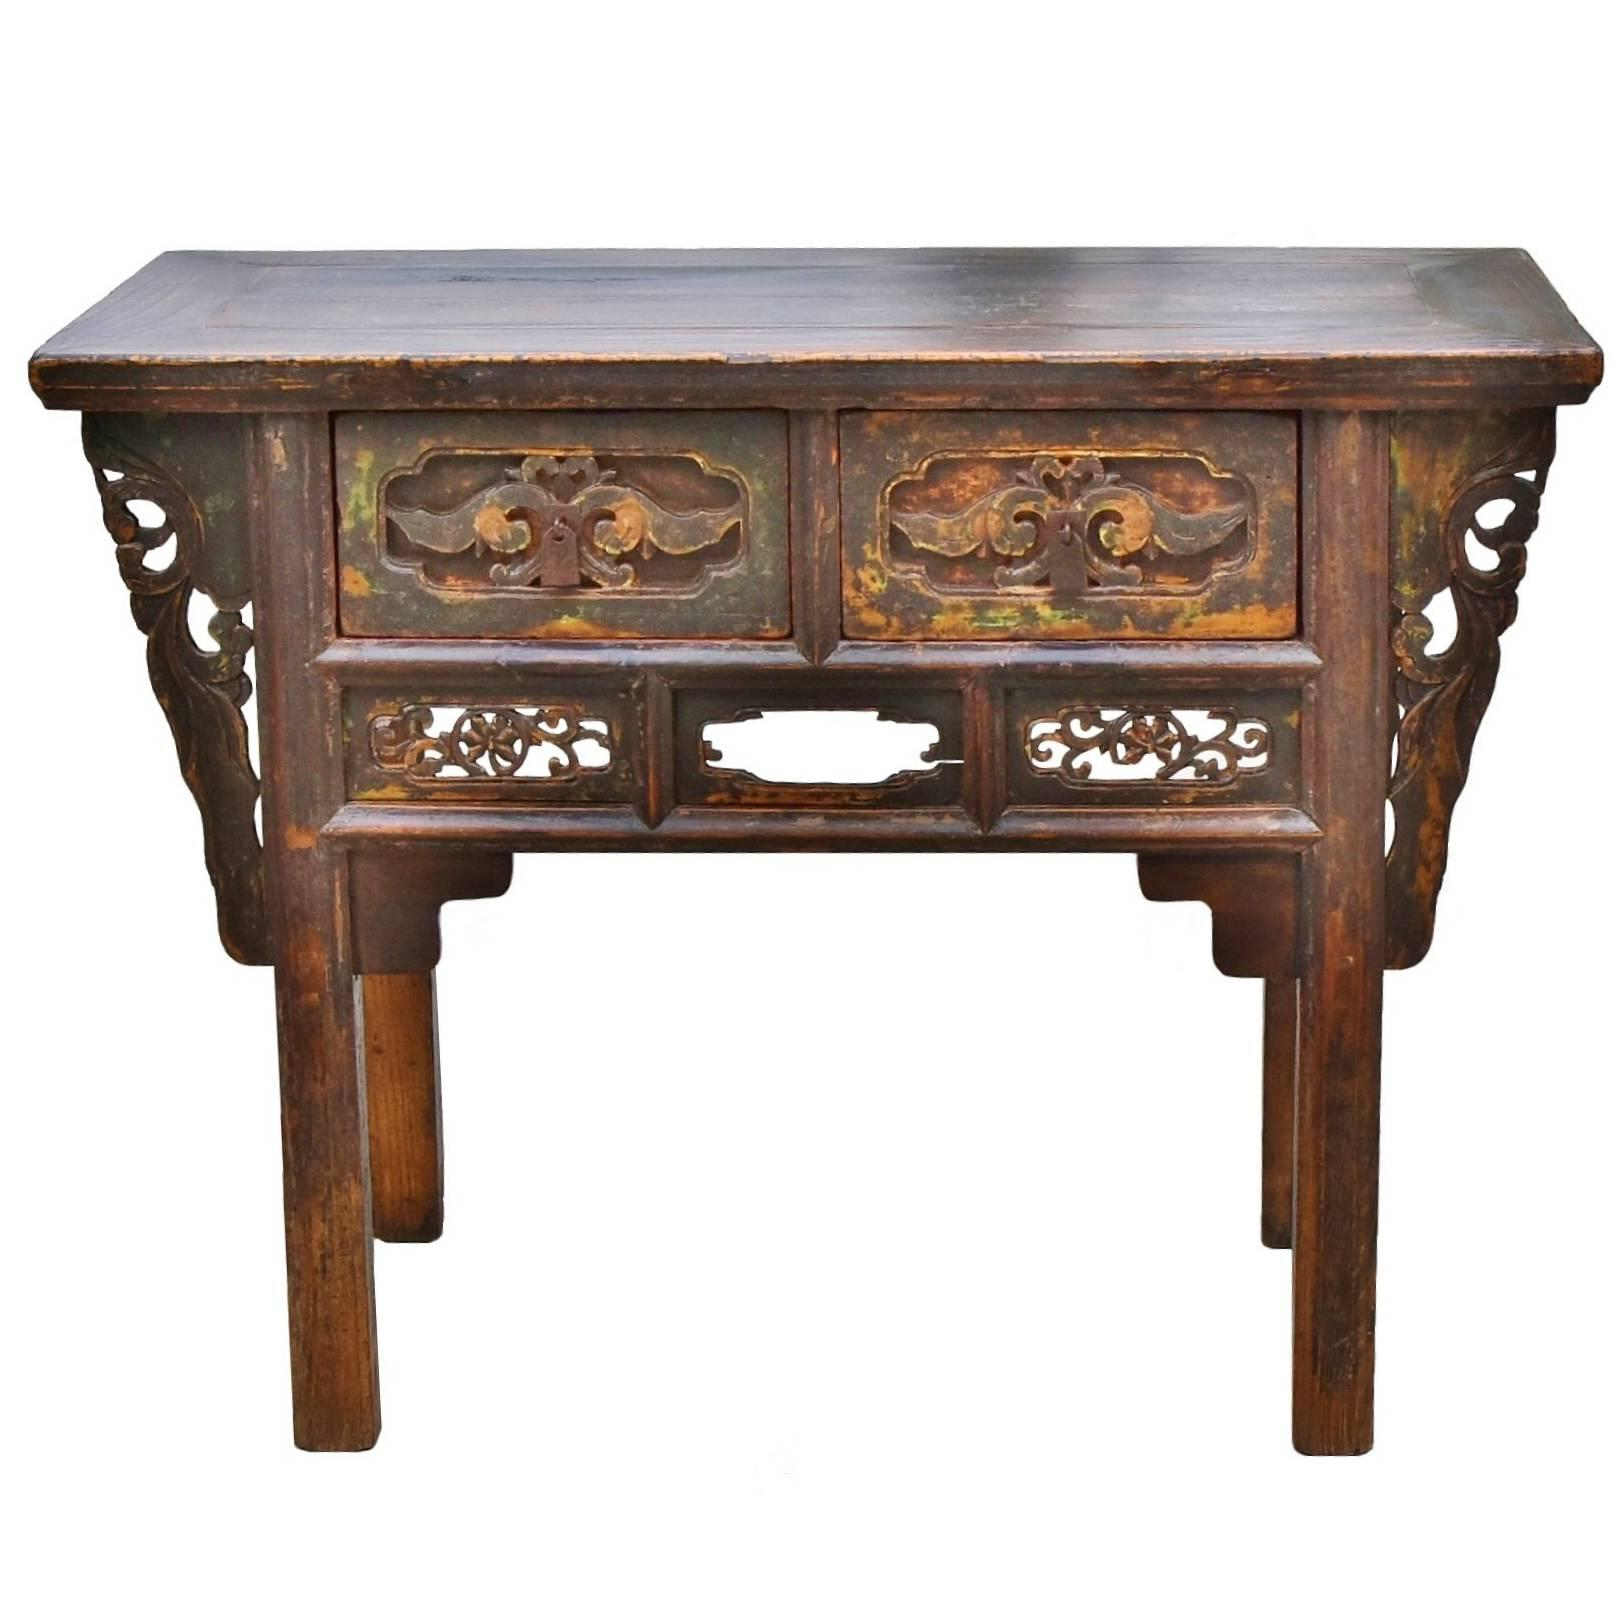 19th Century, Carved Table, Chinese Antique Table With Peony